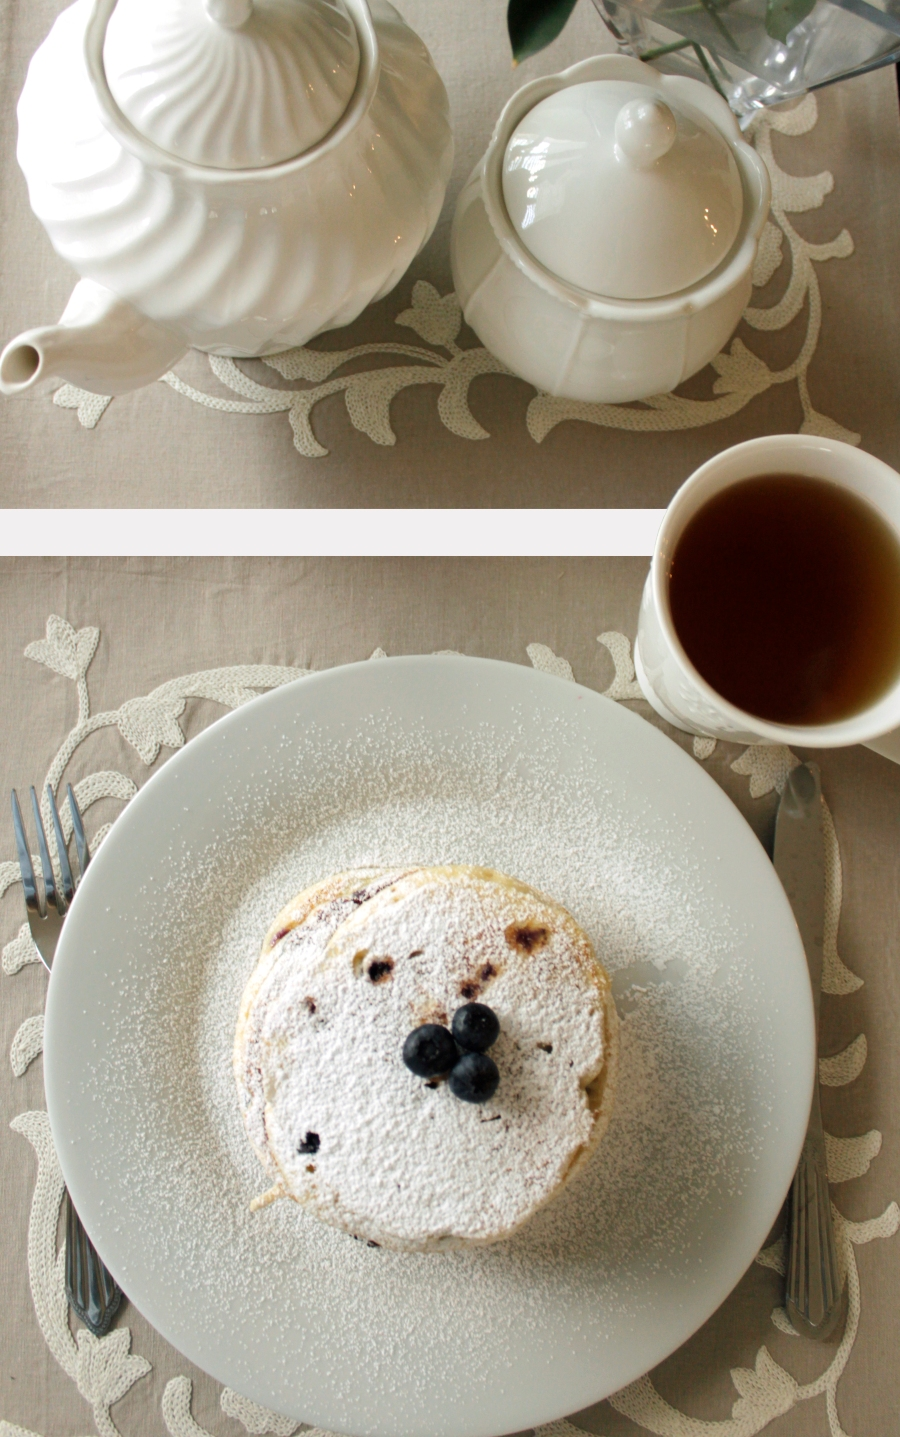 blueberry pancake 1